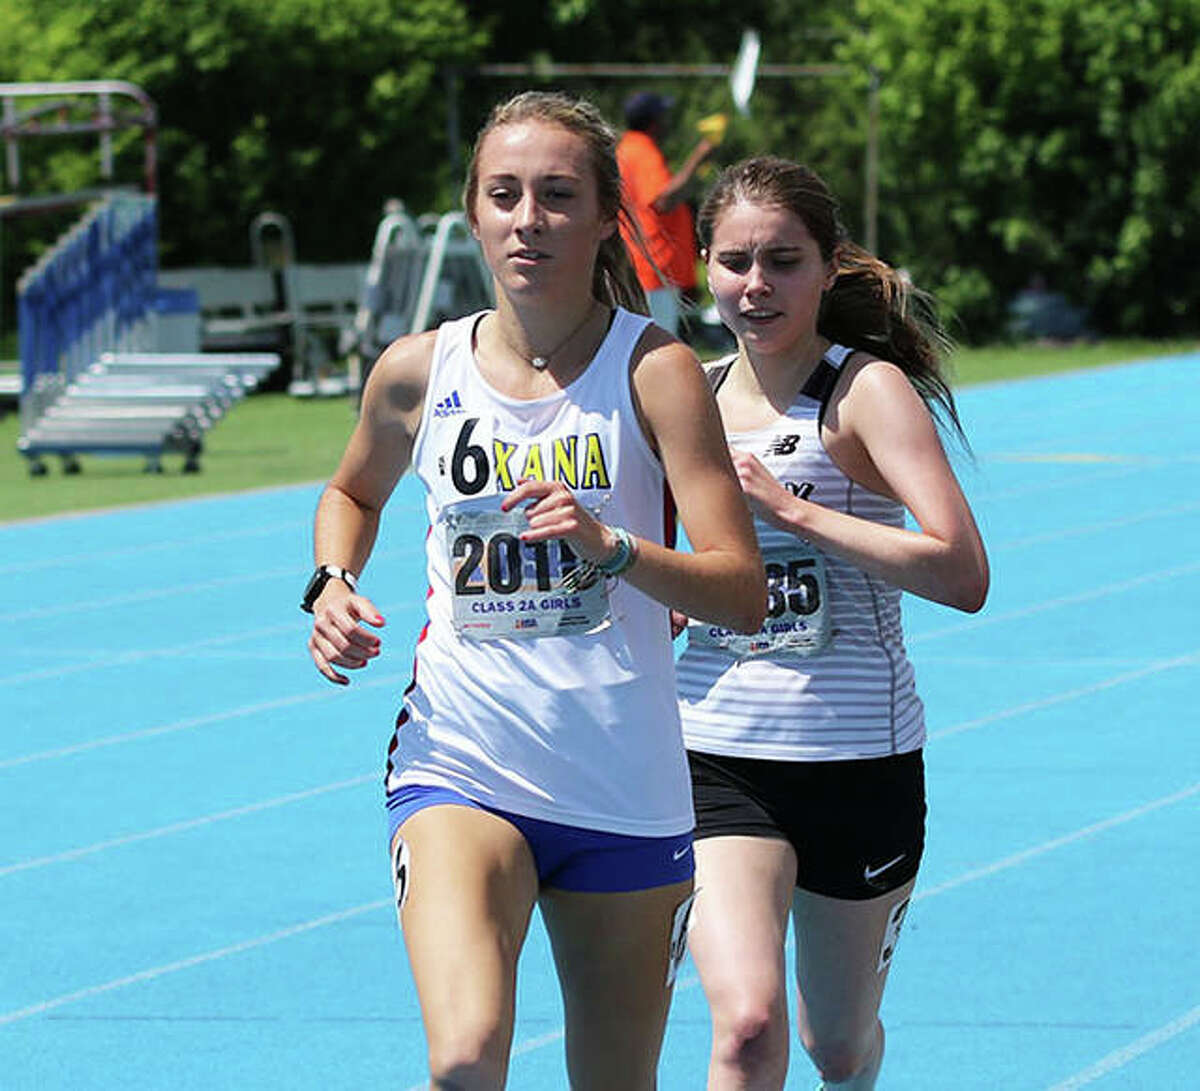 Roxana's Janelynn Wirth (left) leads Oak Park Fenwick's Katie Cahill during their 3,200-meters heat Friday at the Class 2A state meet in Charleston. Cahill won the heat and finished 11th overall, with Wirth second in the heat and 13th overall.